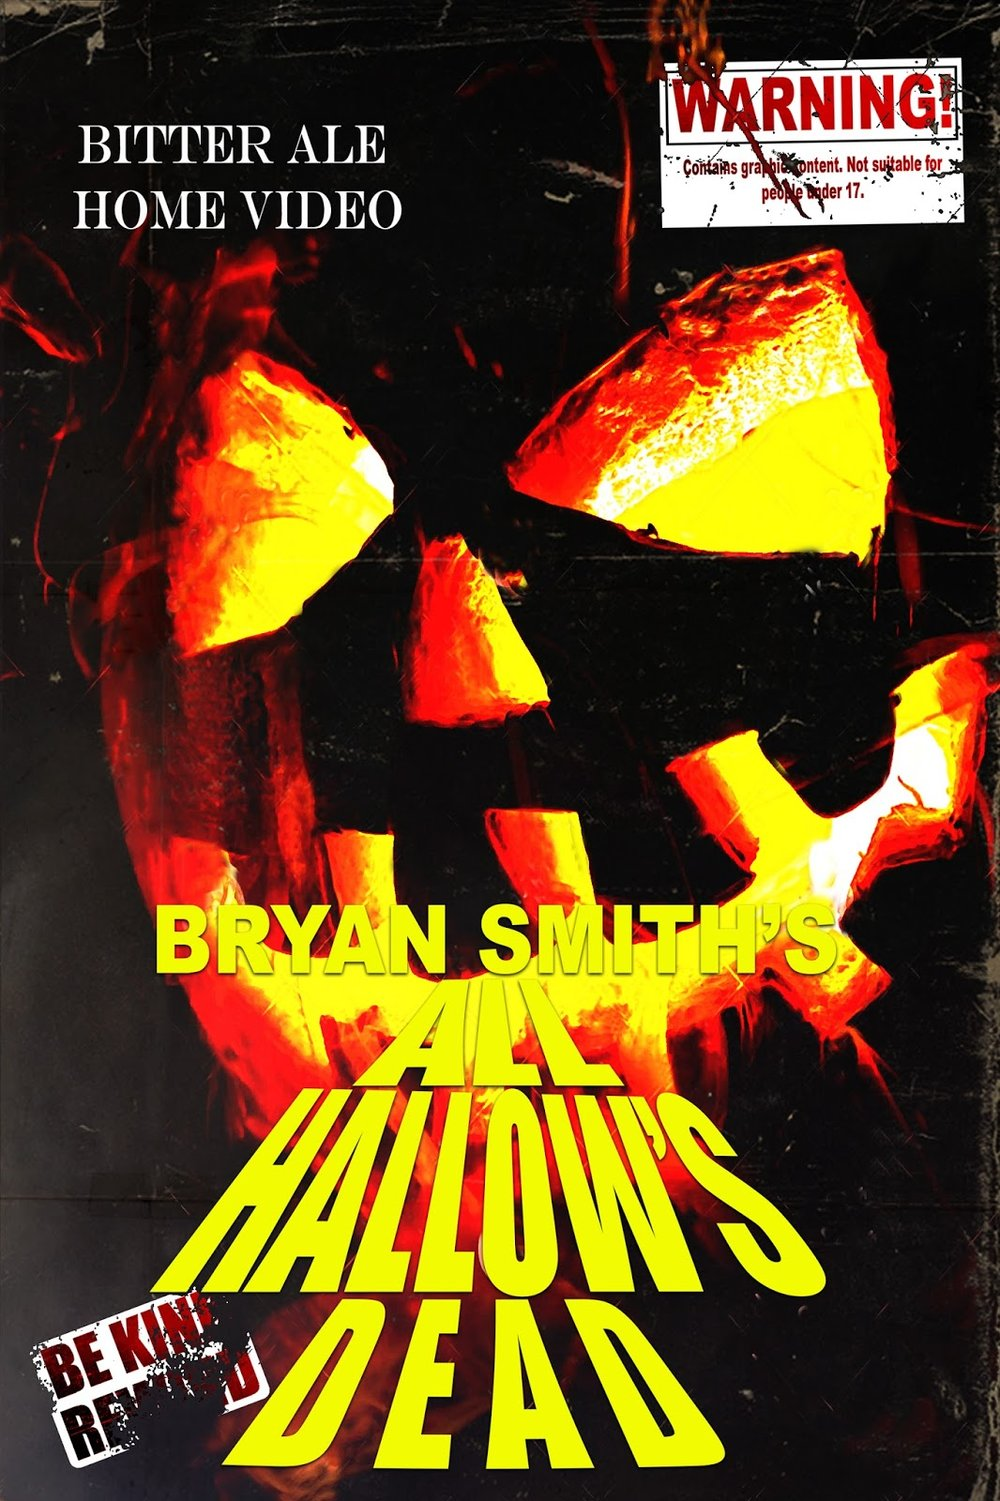 All Hallows Dead_Bryan Smith.jpg